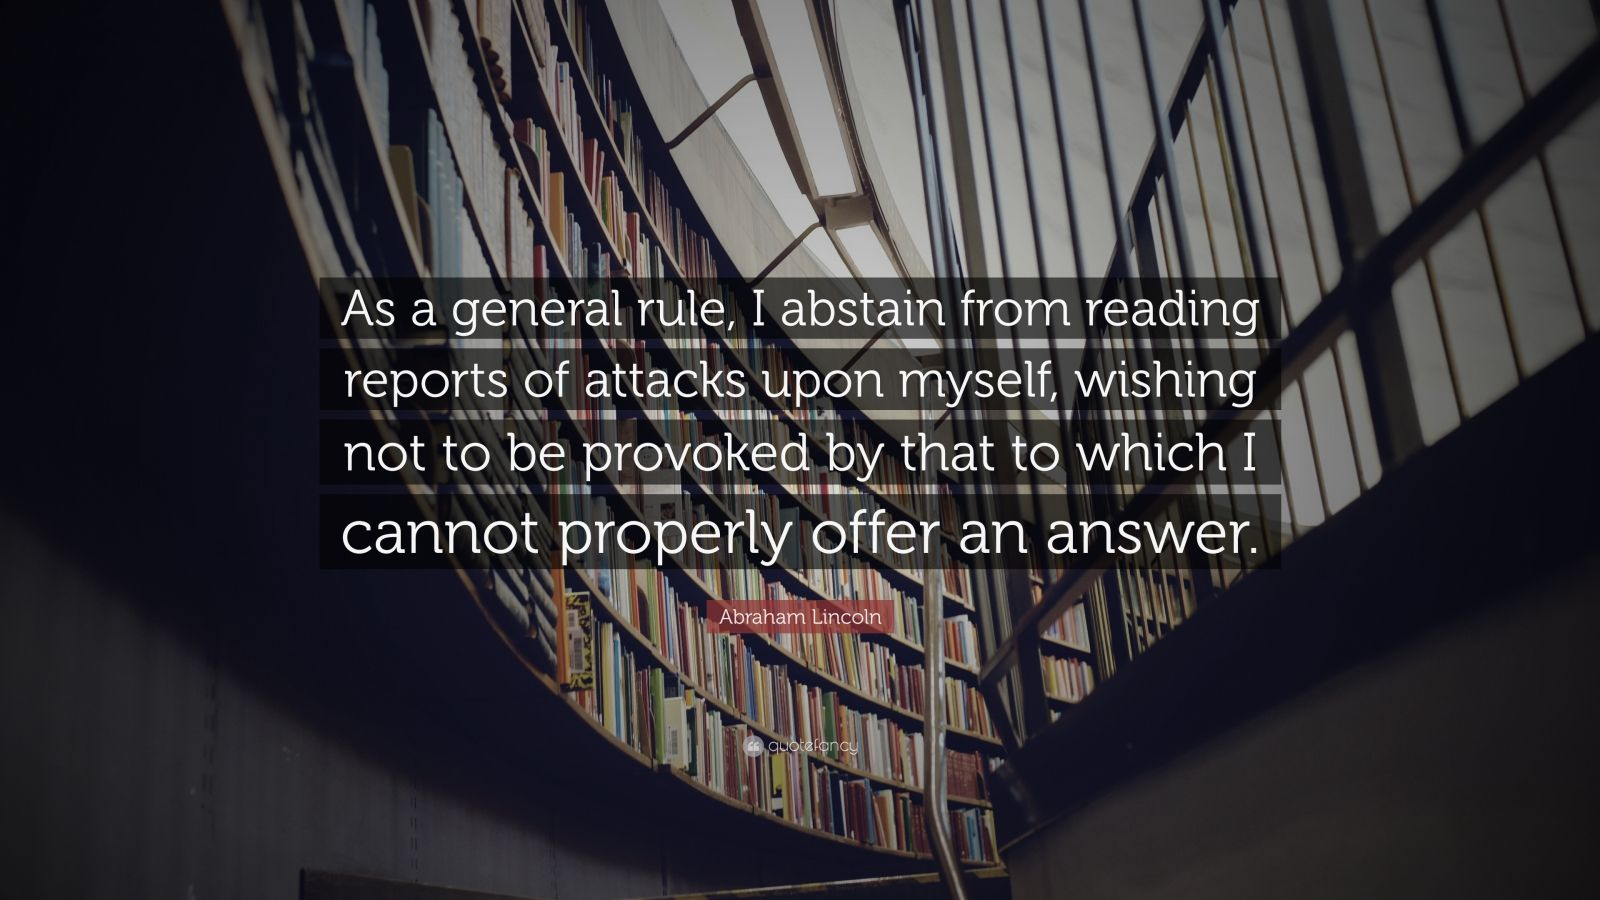 """Abraham Lincoln Quote: """"As a general rule, I abstain from reading reports of attacks upon myself, wishing not to be provoked by that to which I cannot properly offer an answer."""""""